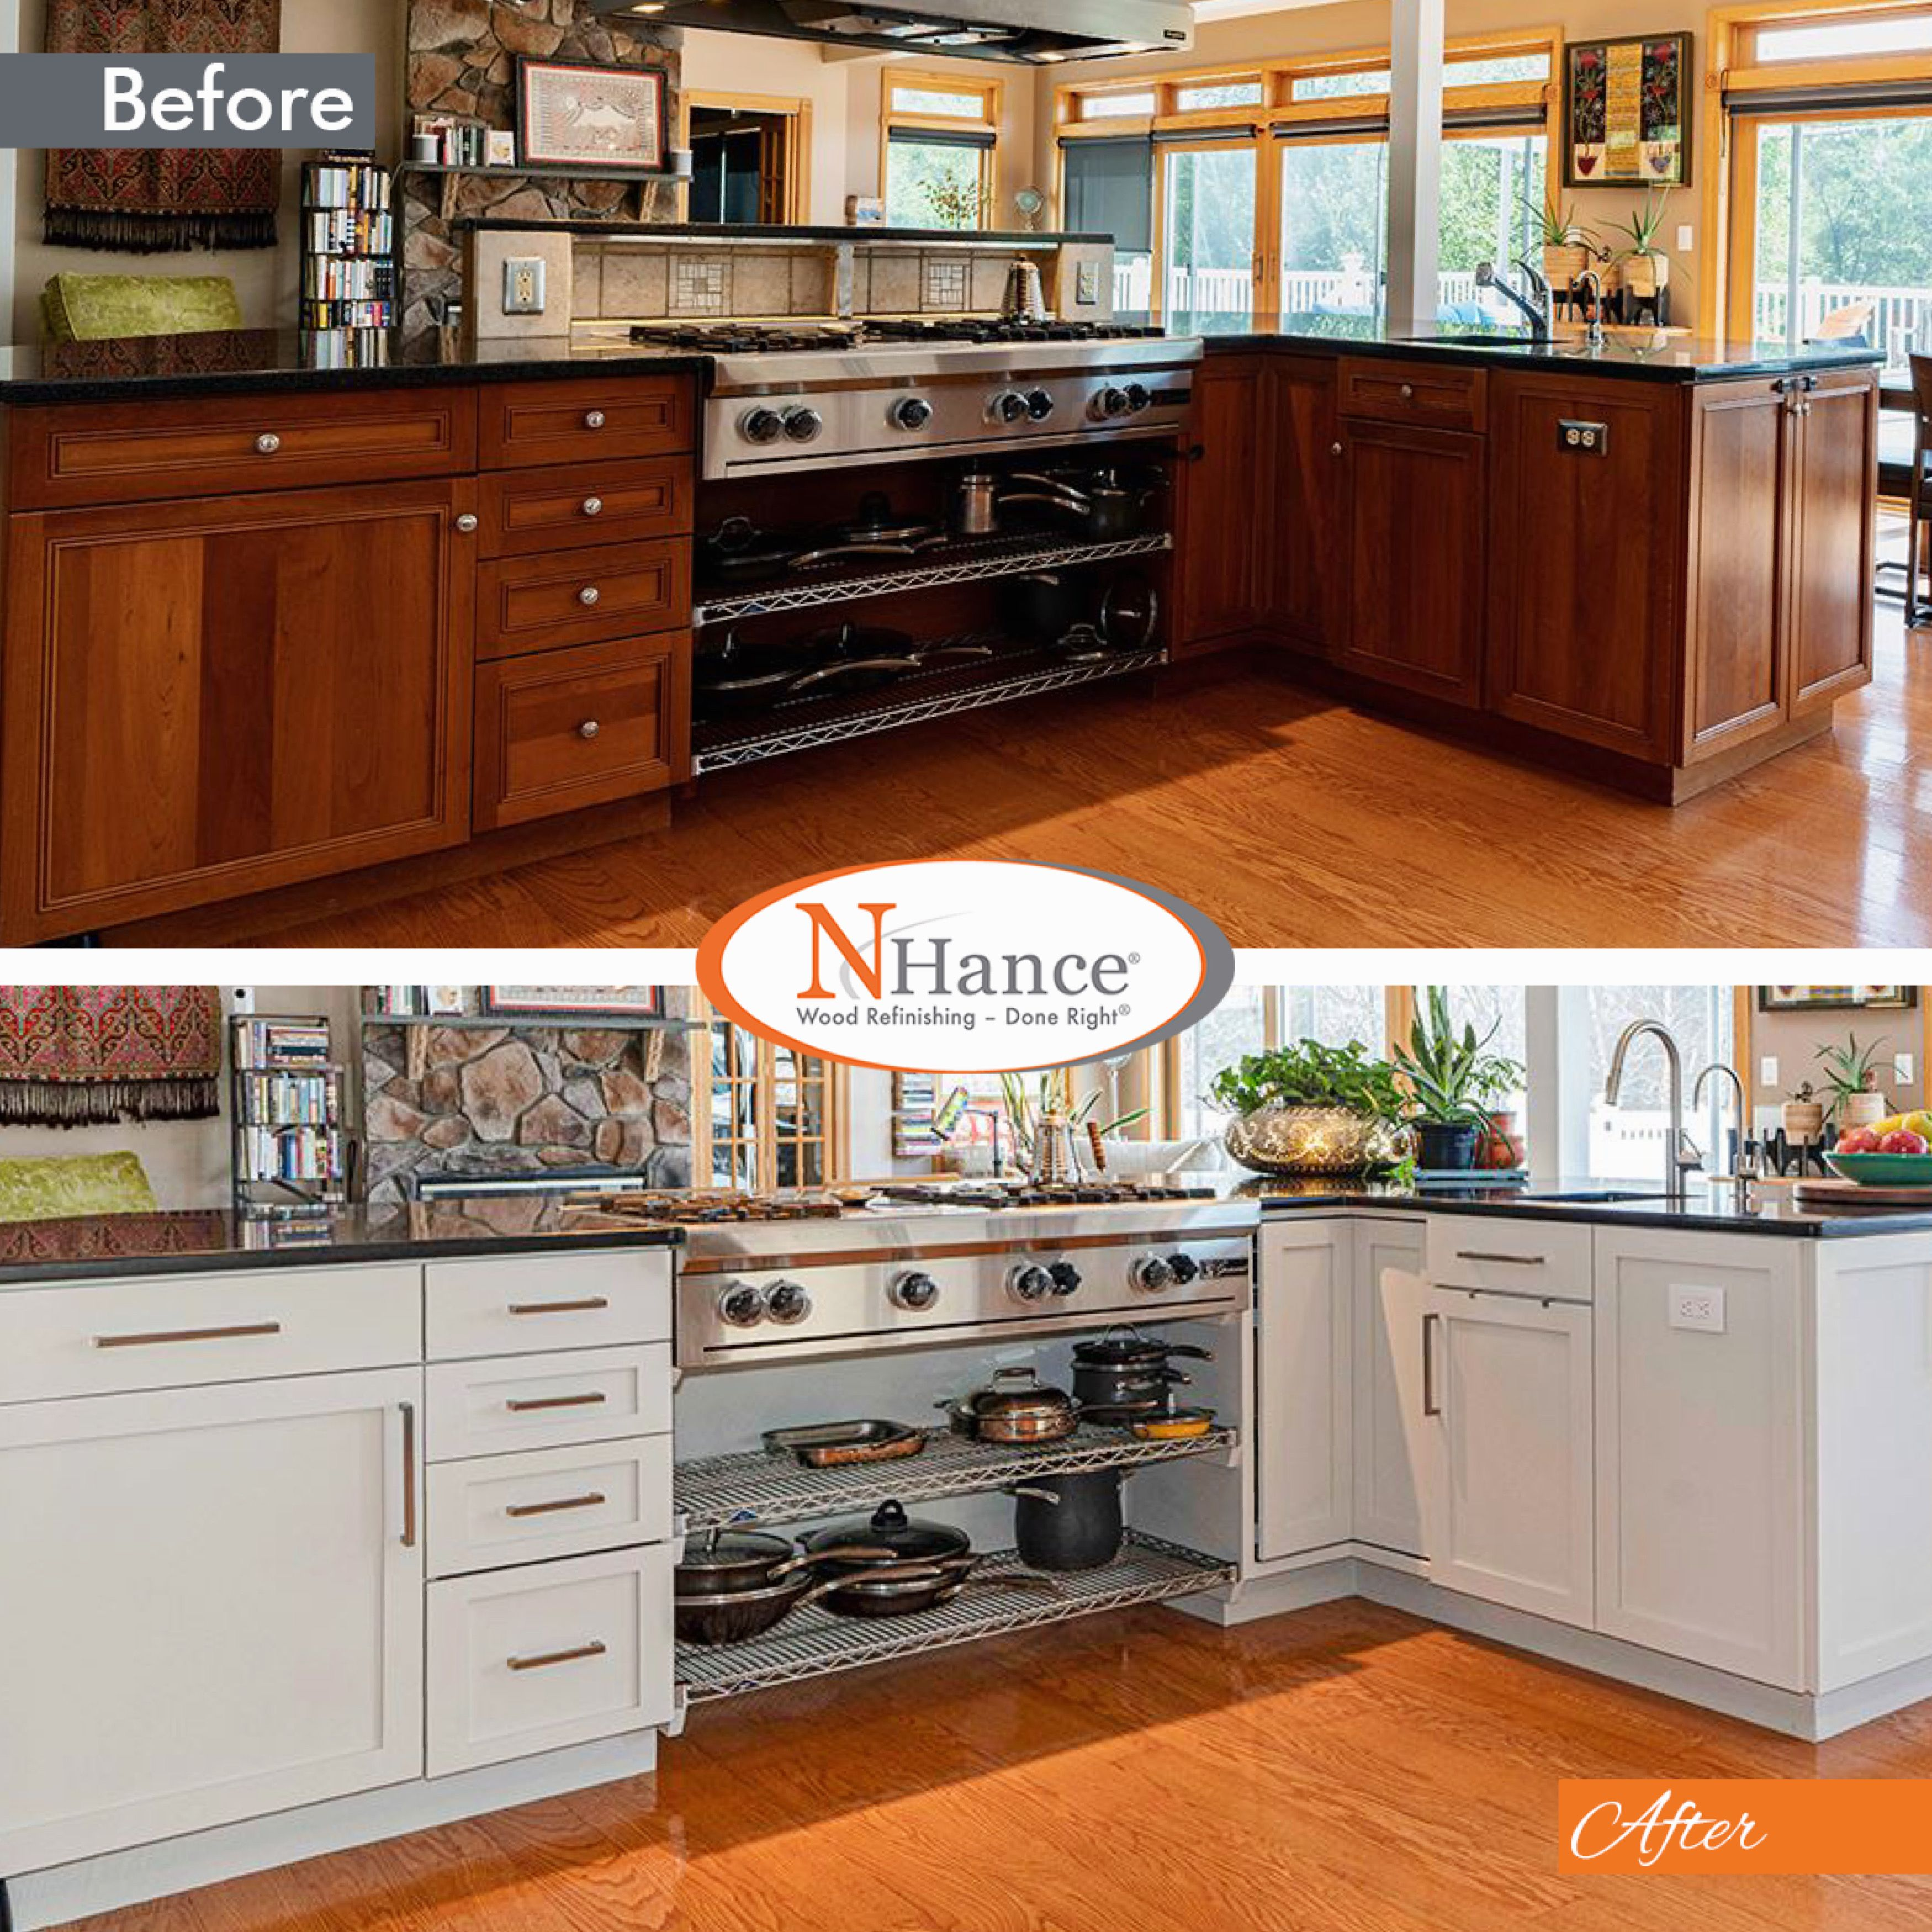 Pin by NHance Wood Refinishing of Ce on NHance Kitchens